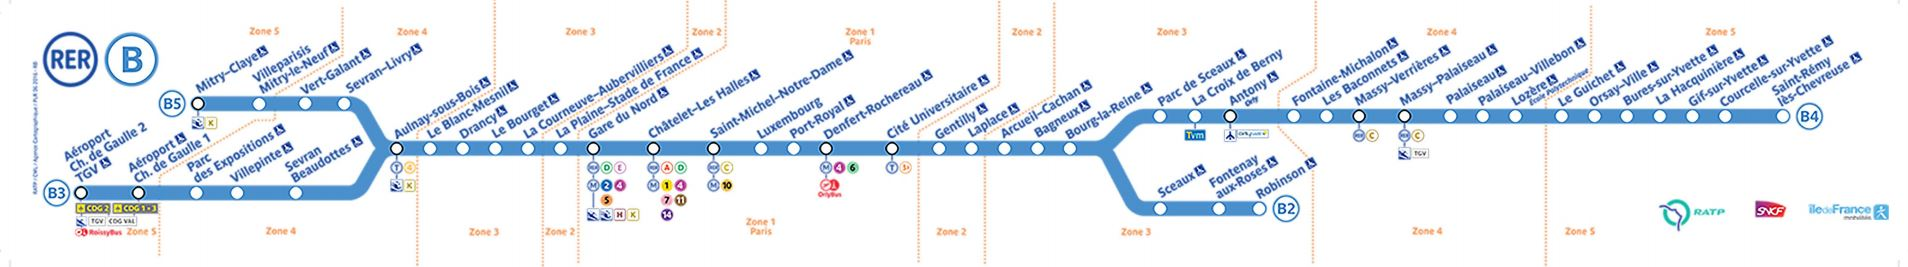 Plan du train RER B